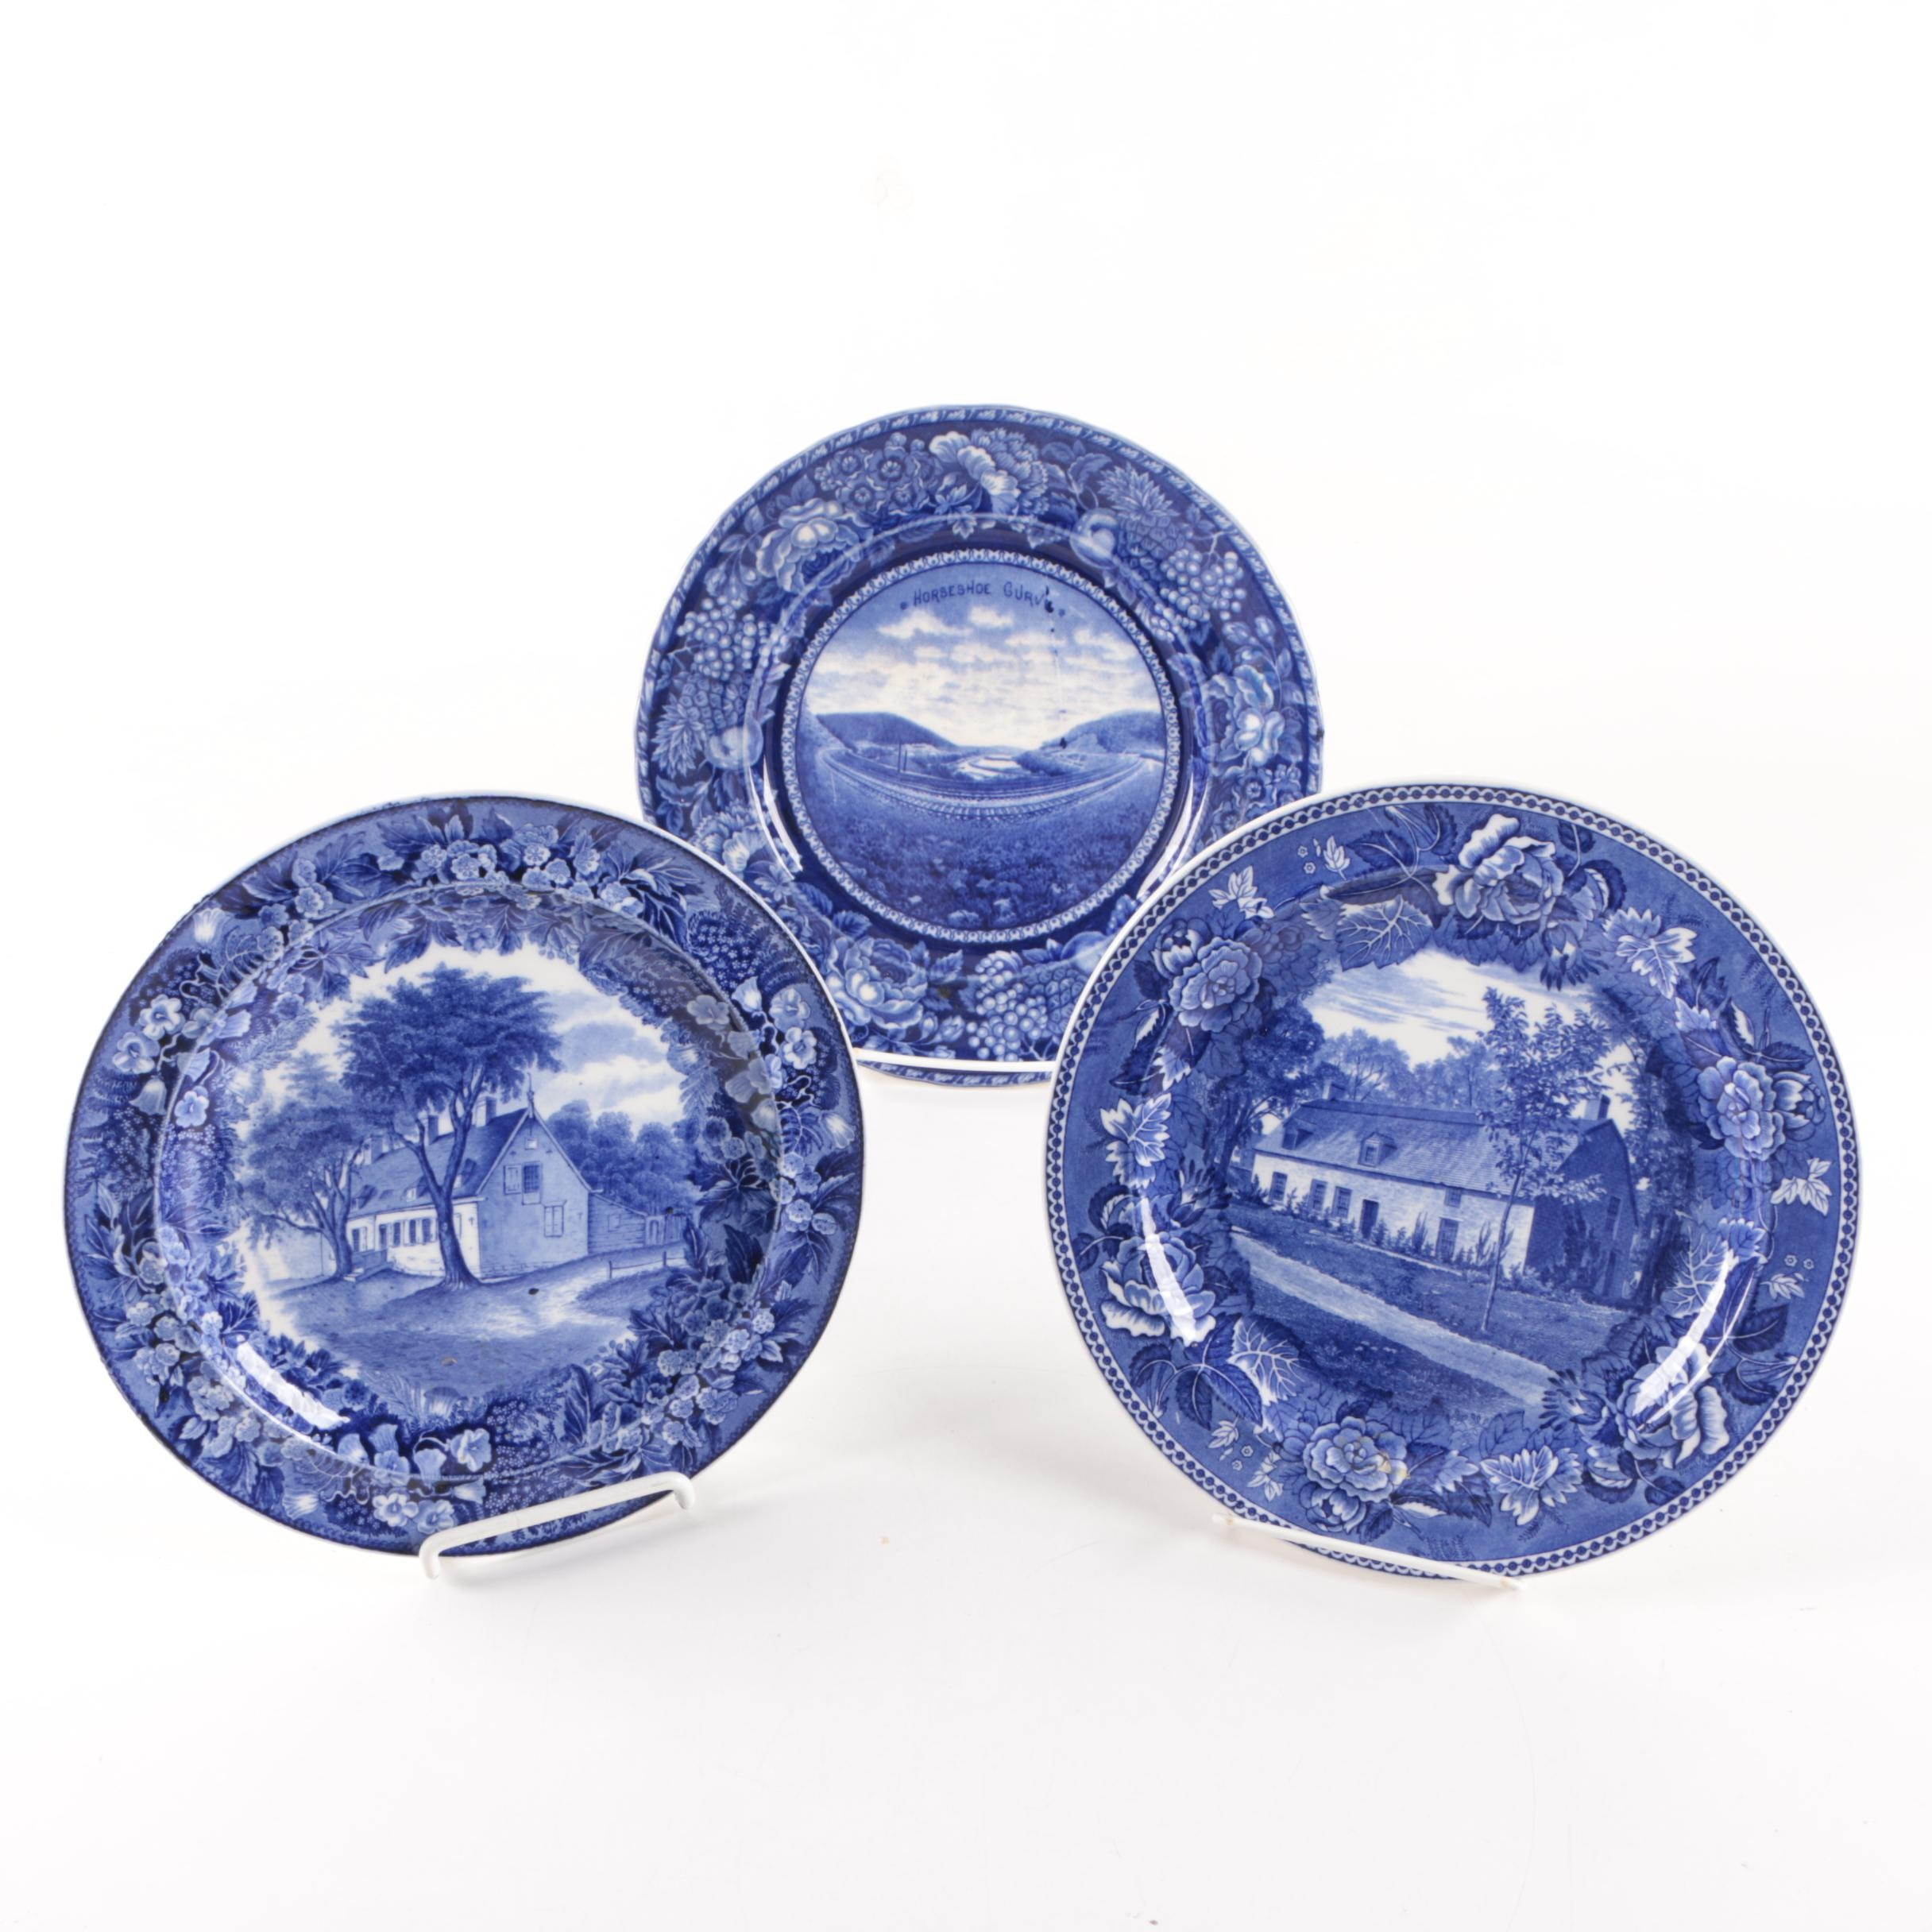 Wedgwood and Staffordshire Plates